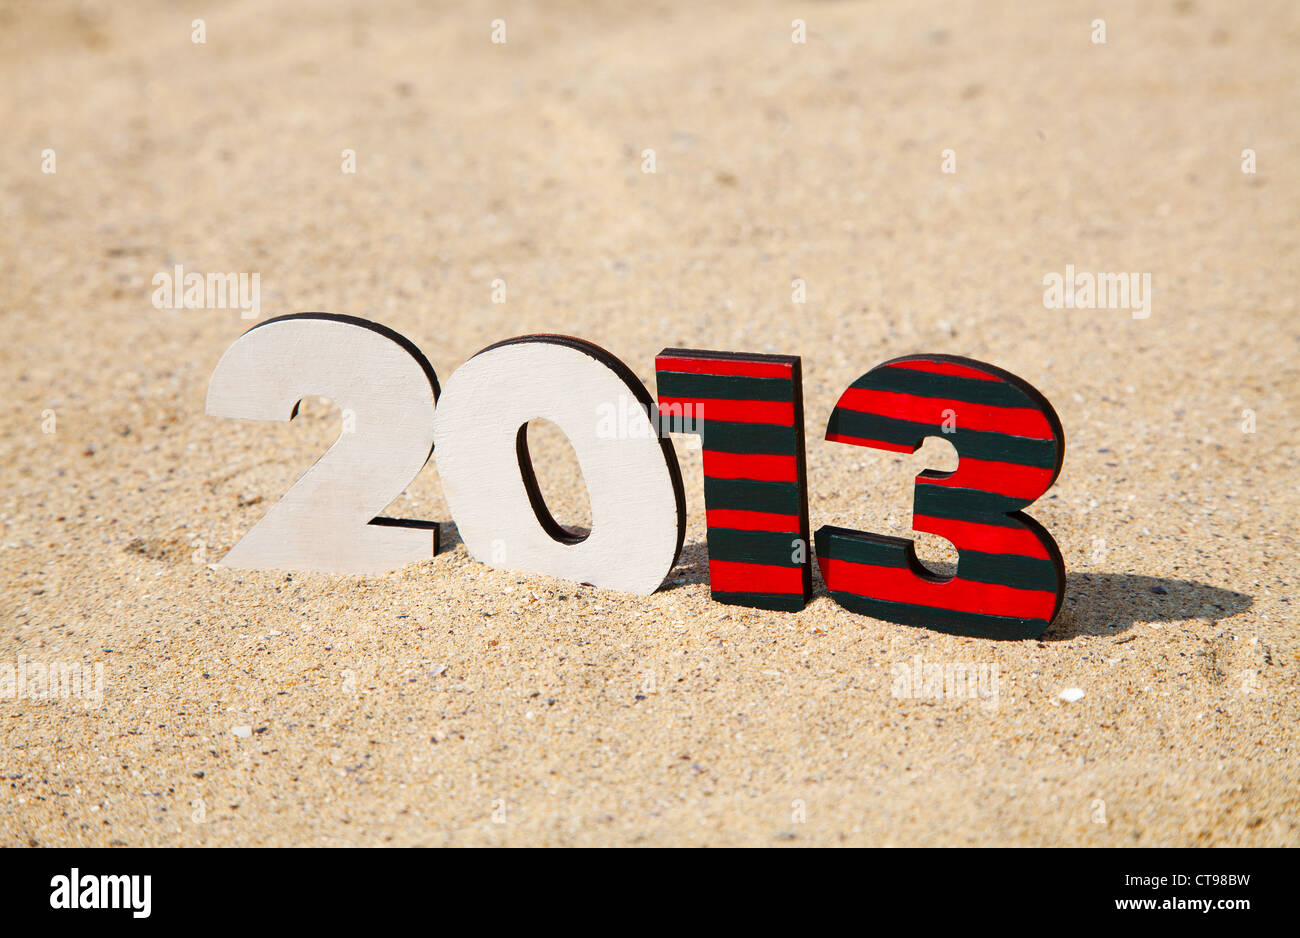 Wooden 2013 year number on the sand at a beach - Stock Image